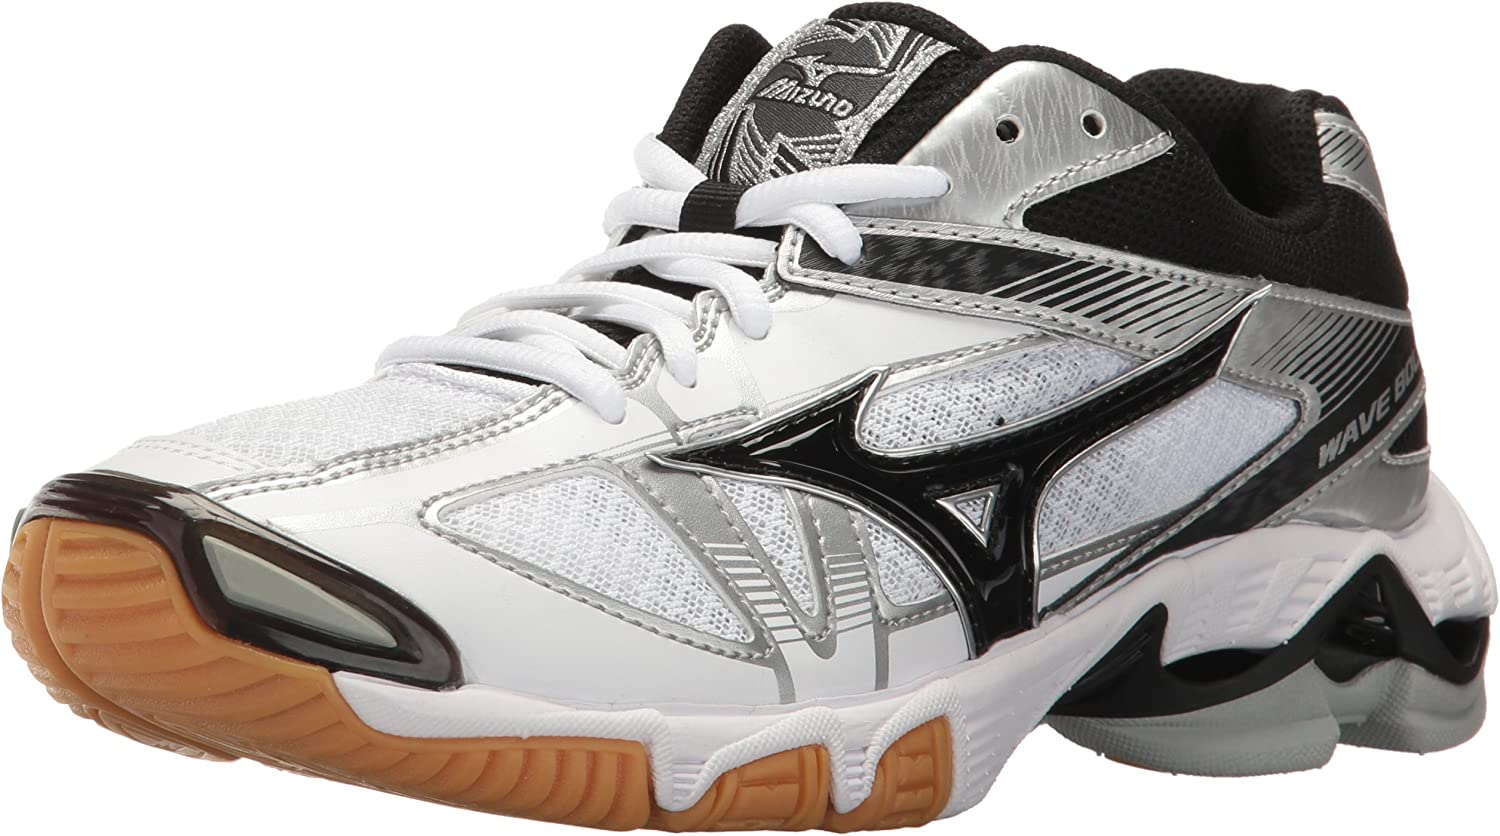 Mizuno Wave Bolt 6 donna Volleybtutti sautope, bianca nero, 6.5 B US